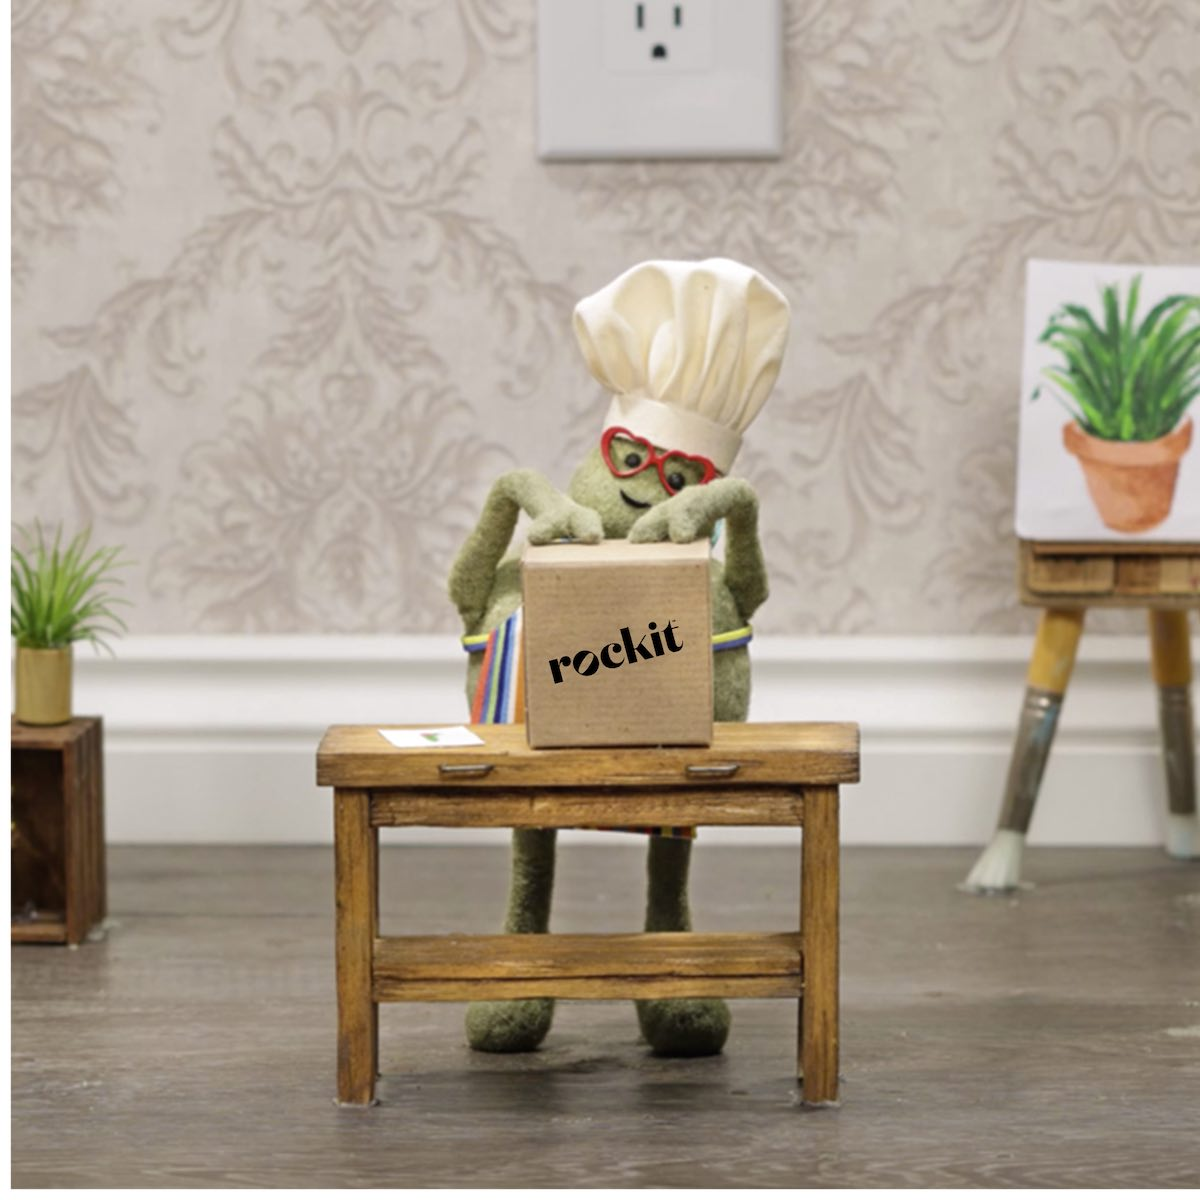 Rockit Apple partners with The Tiny Chef to showcase miniature apples